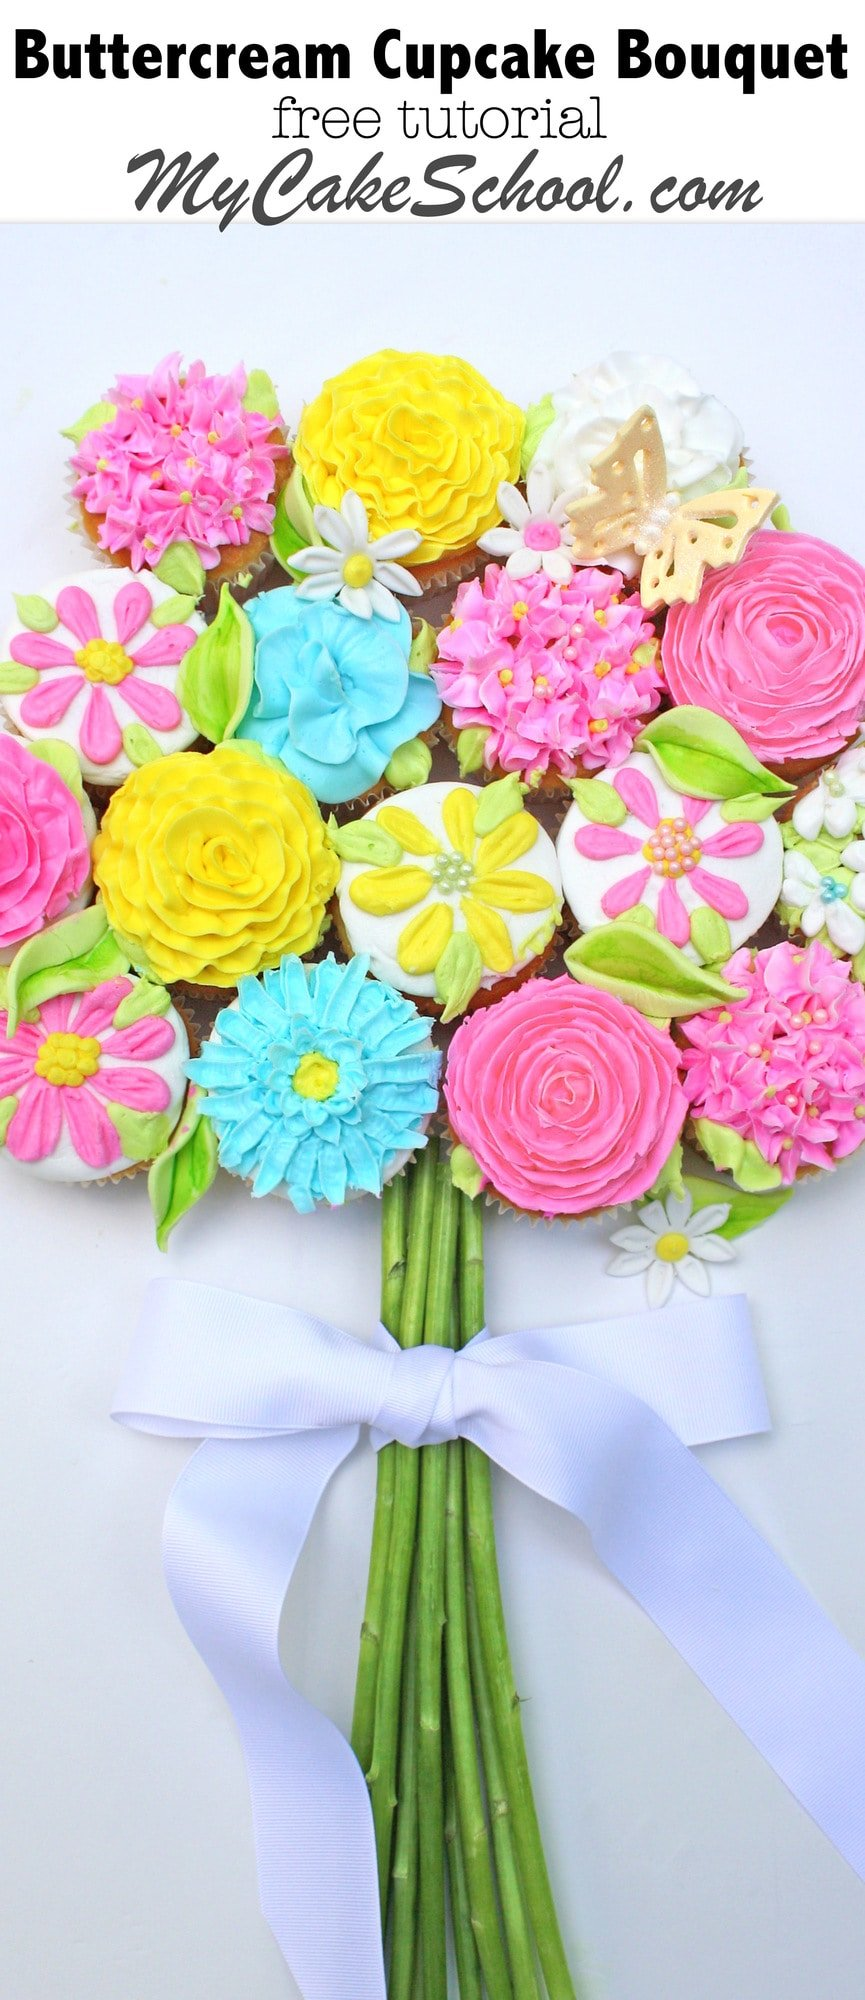 Learn how to pipe simple buttercream flowers and how to make a beautiful pull-apart cupcake cake bouquet in this free tutorial by MyCakeSchool.com!